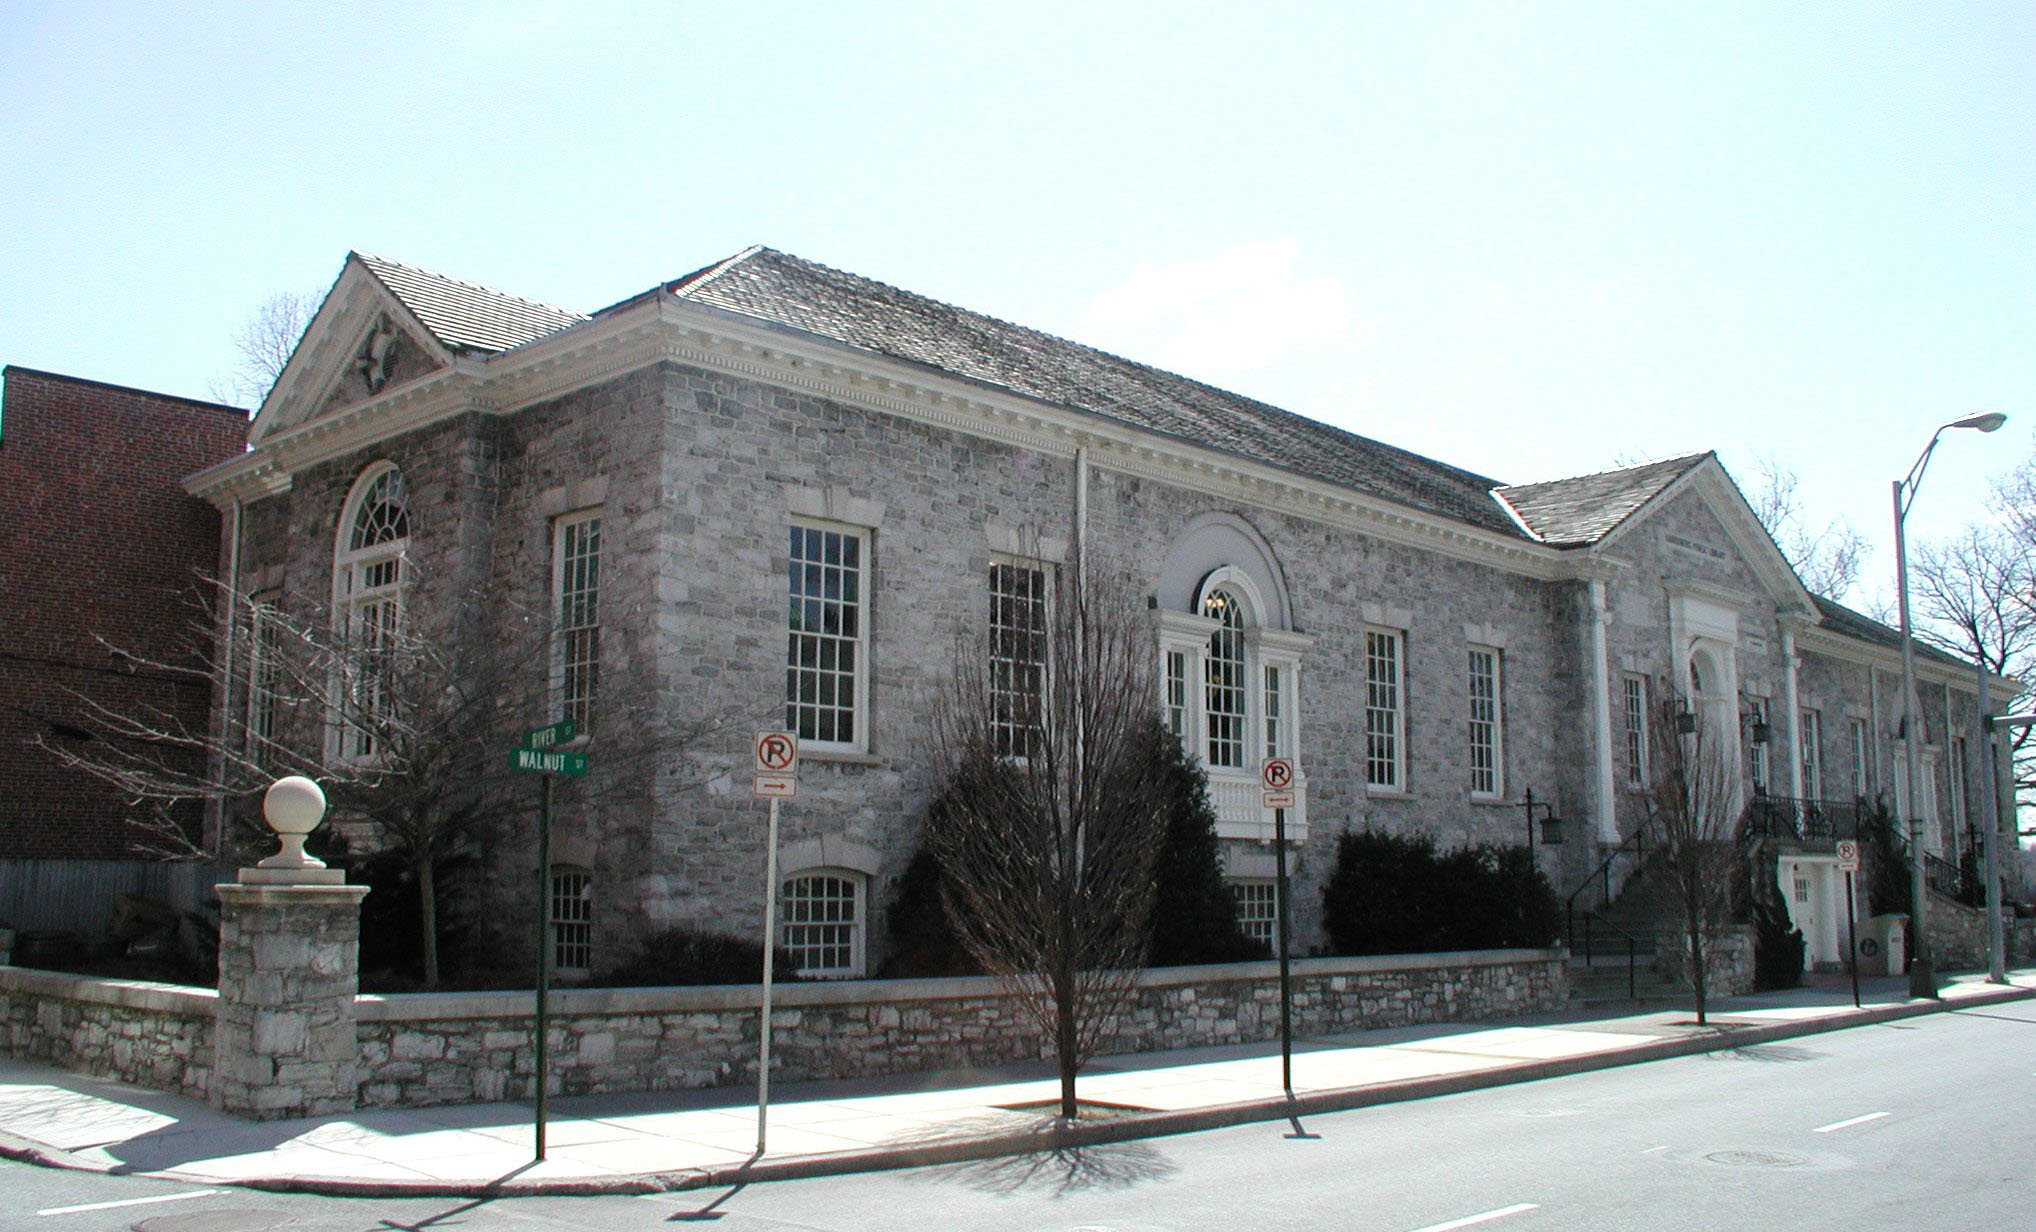 McCormick Riverfront Branch Library and Central Offices, Dauphin County Library System - Historic P